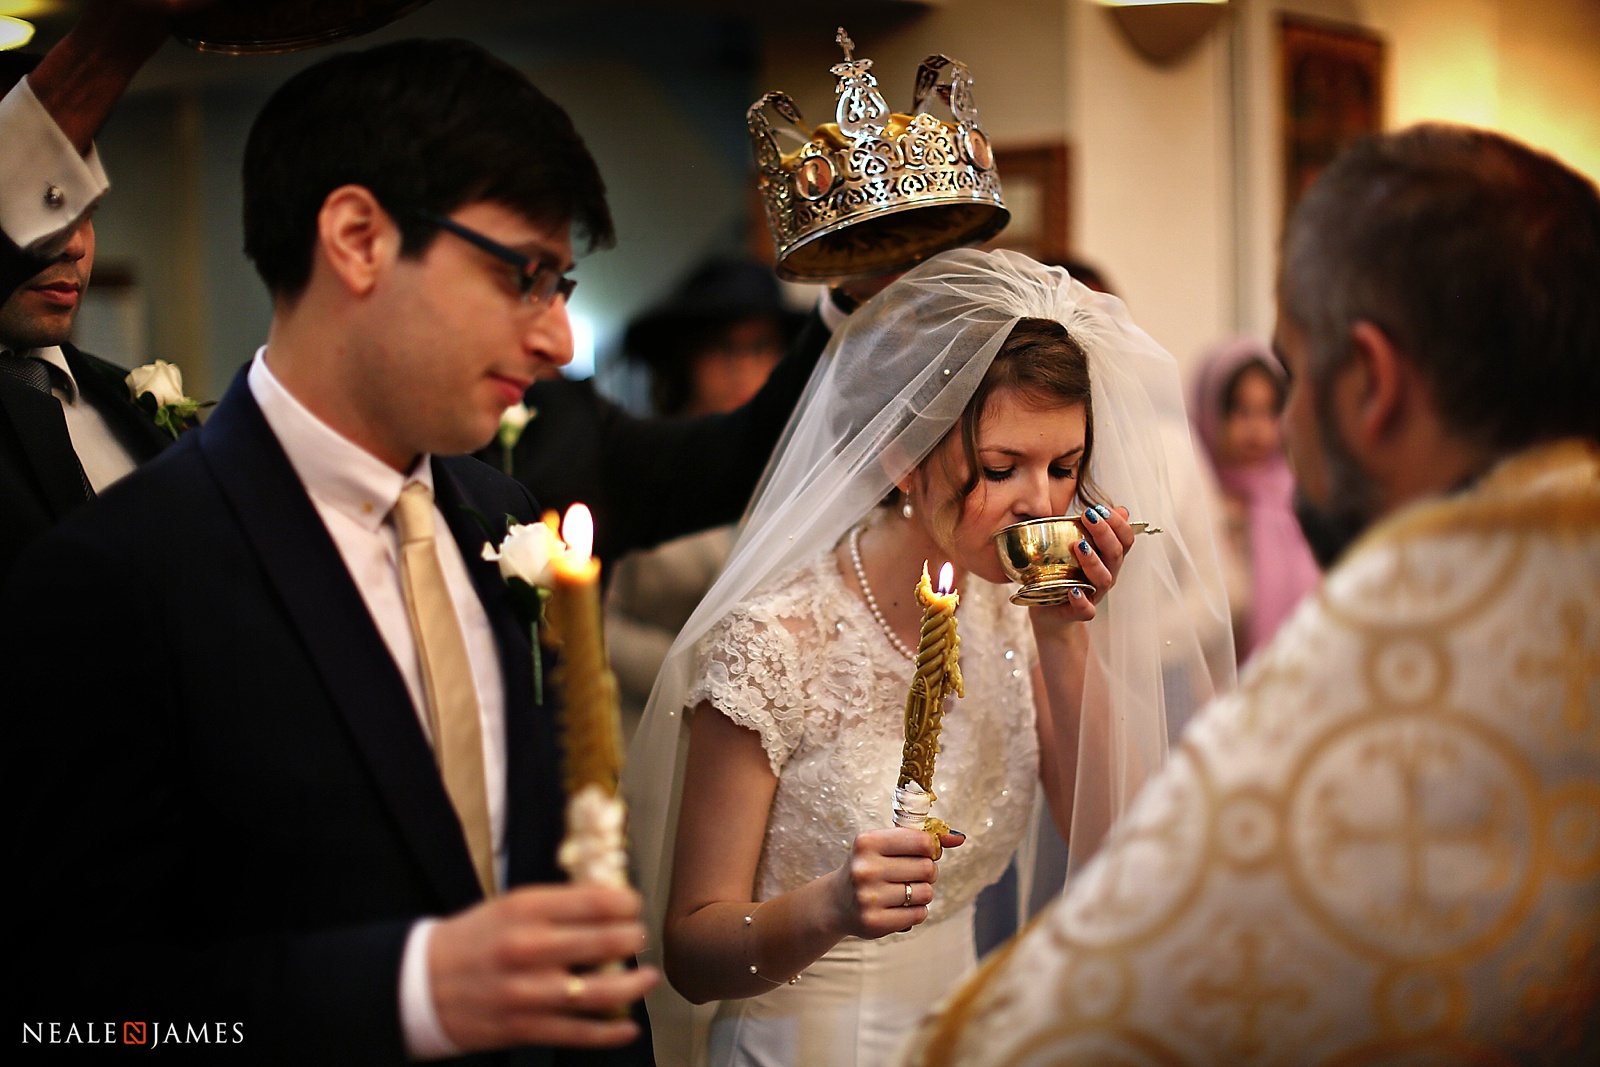 A wedding picture from the Russian Orthodox church in London